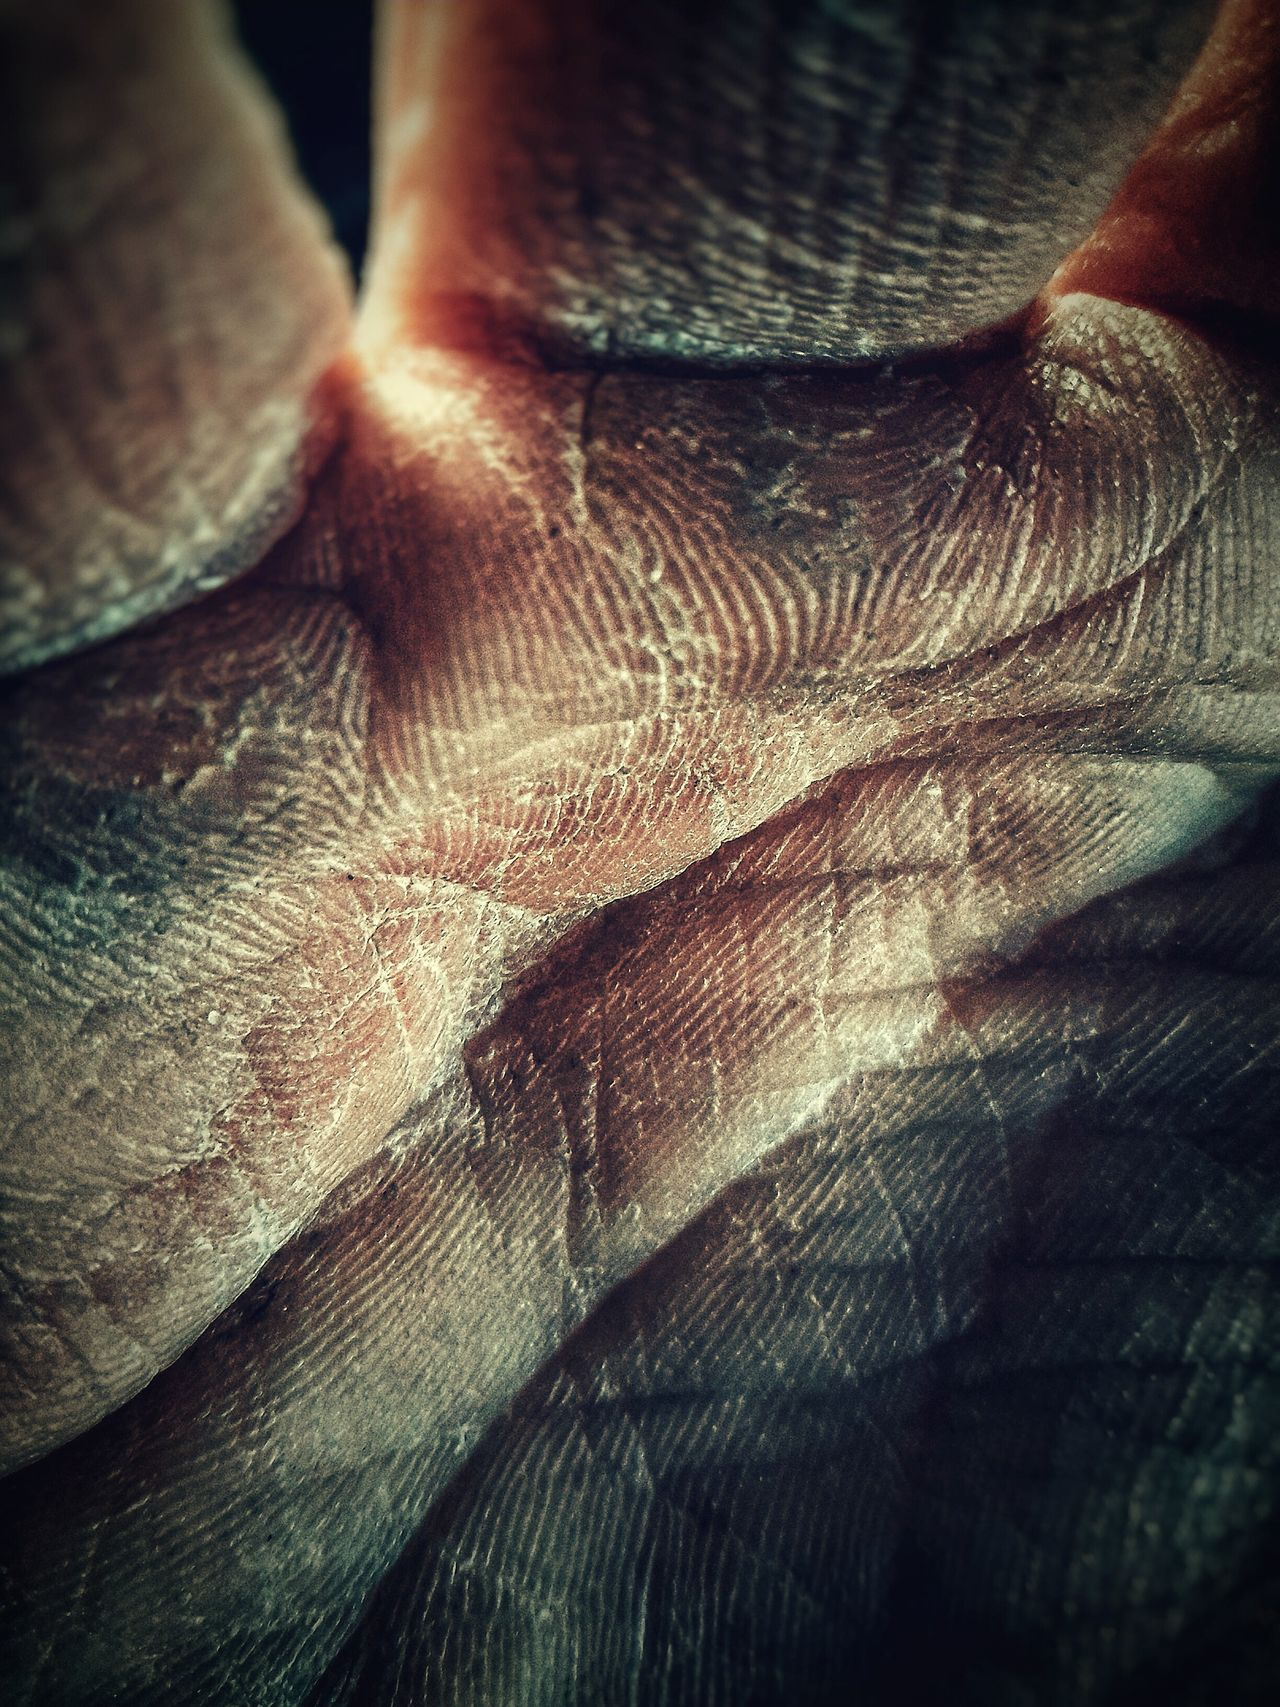 Close-up Real People One Person Human Skin One Man Only Human Body Part Indoors  Adults Only People Only Men Adult Day Hand Worker Fine Art Photography Mypointofview WeekOnEyeEm Calm Fine Art Photograhy My Hand  Full Frame Silhouette Winter Human Hand Mobile Editing